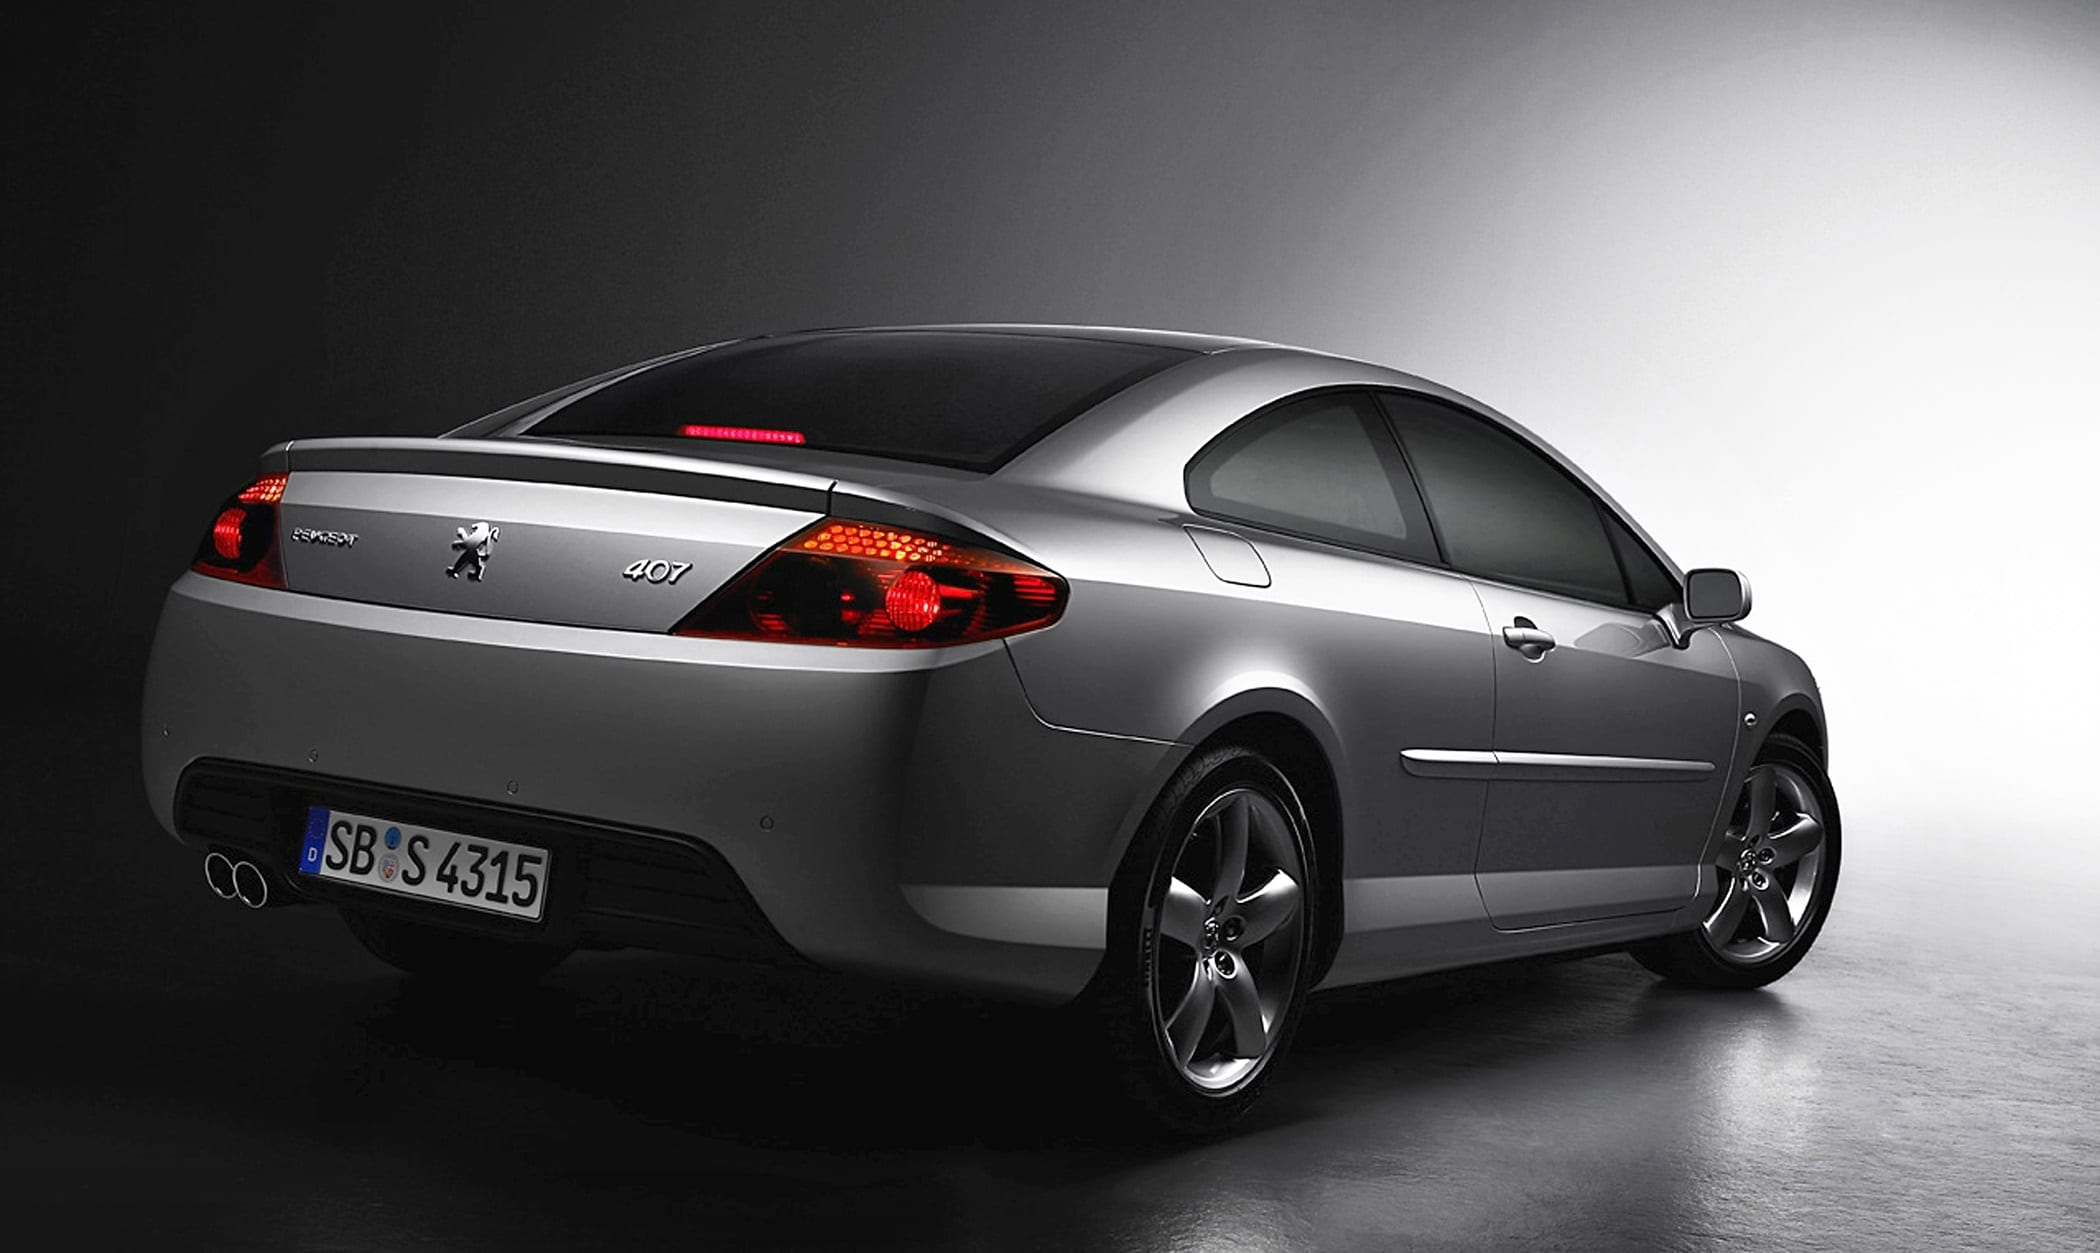 Coupe Peugeot 407 Coupe Handsome In An Ugly Kind Of Way We Think